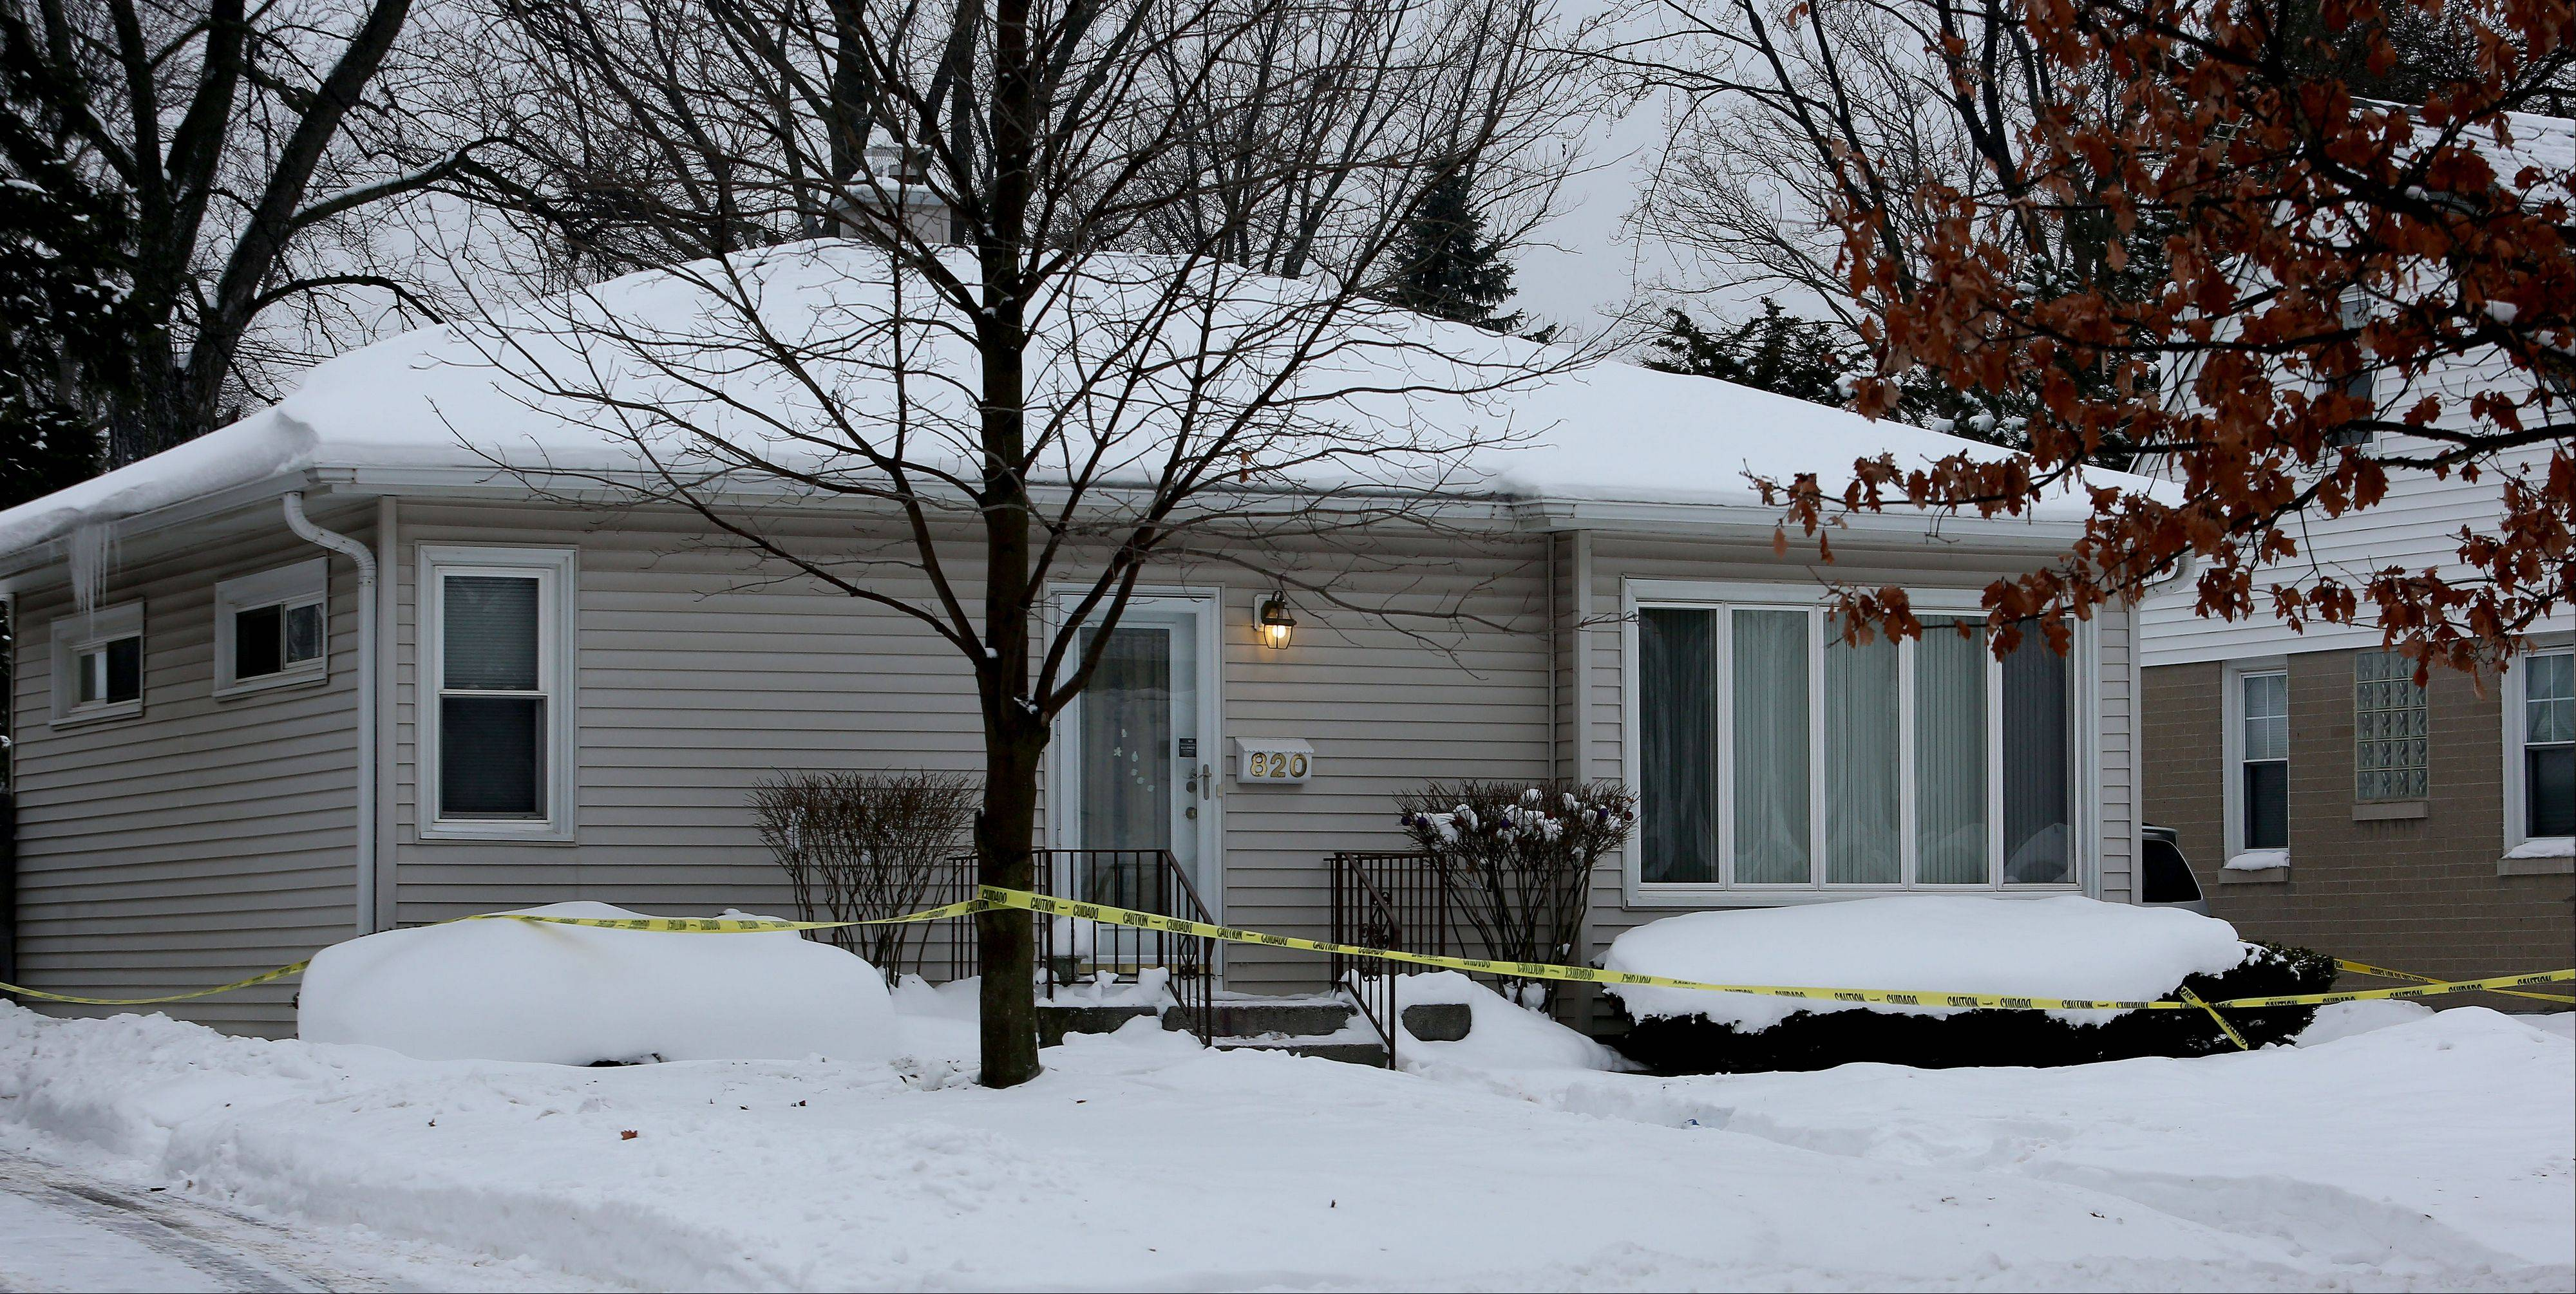 Lombard police are probing the death of a man they found Thursday inside a house on Hammerschmidt Avenue.